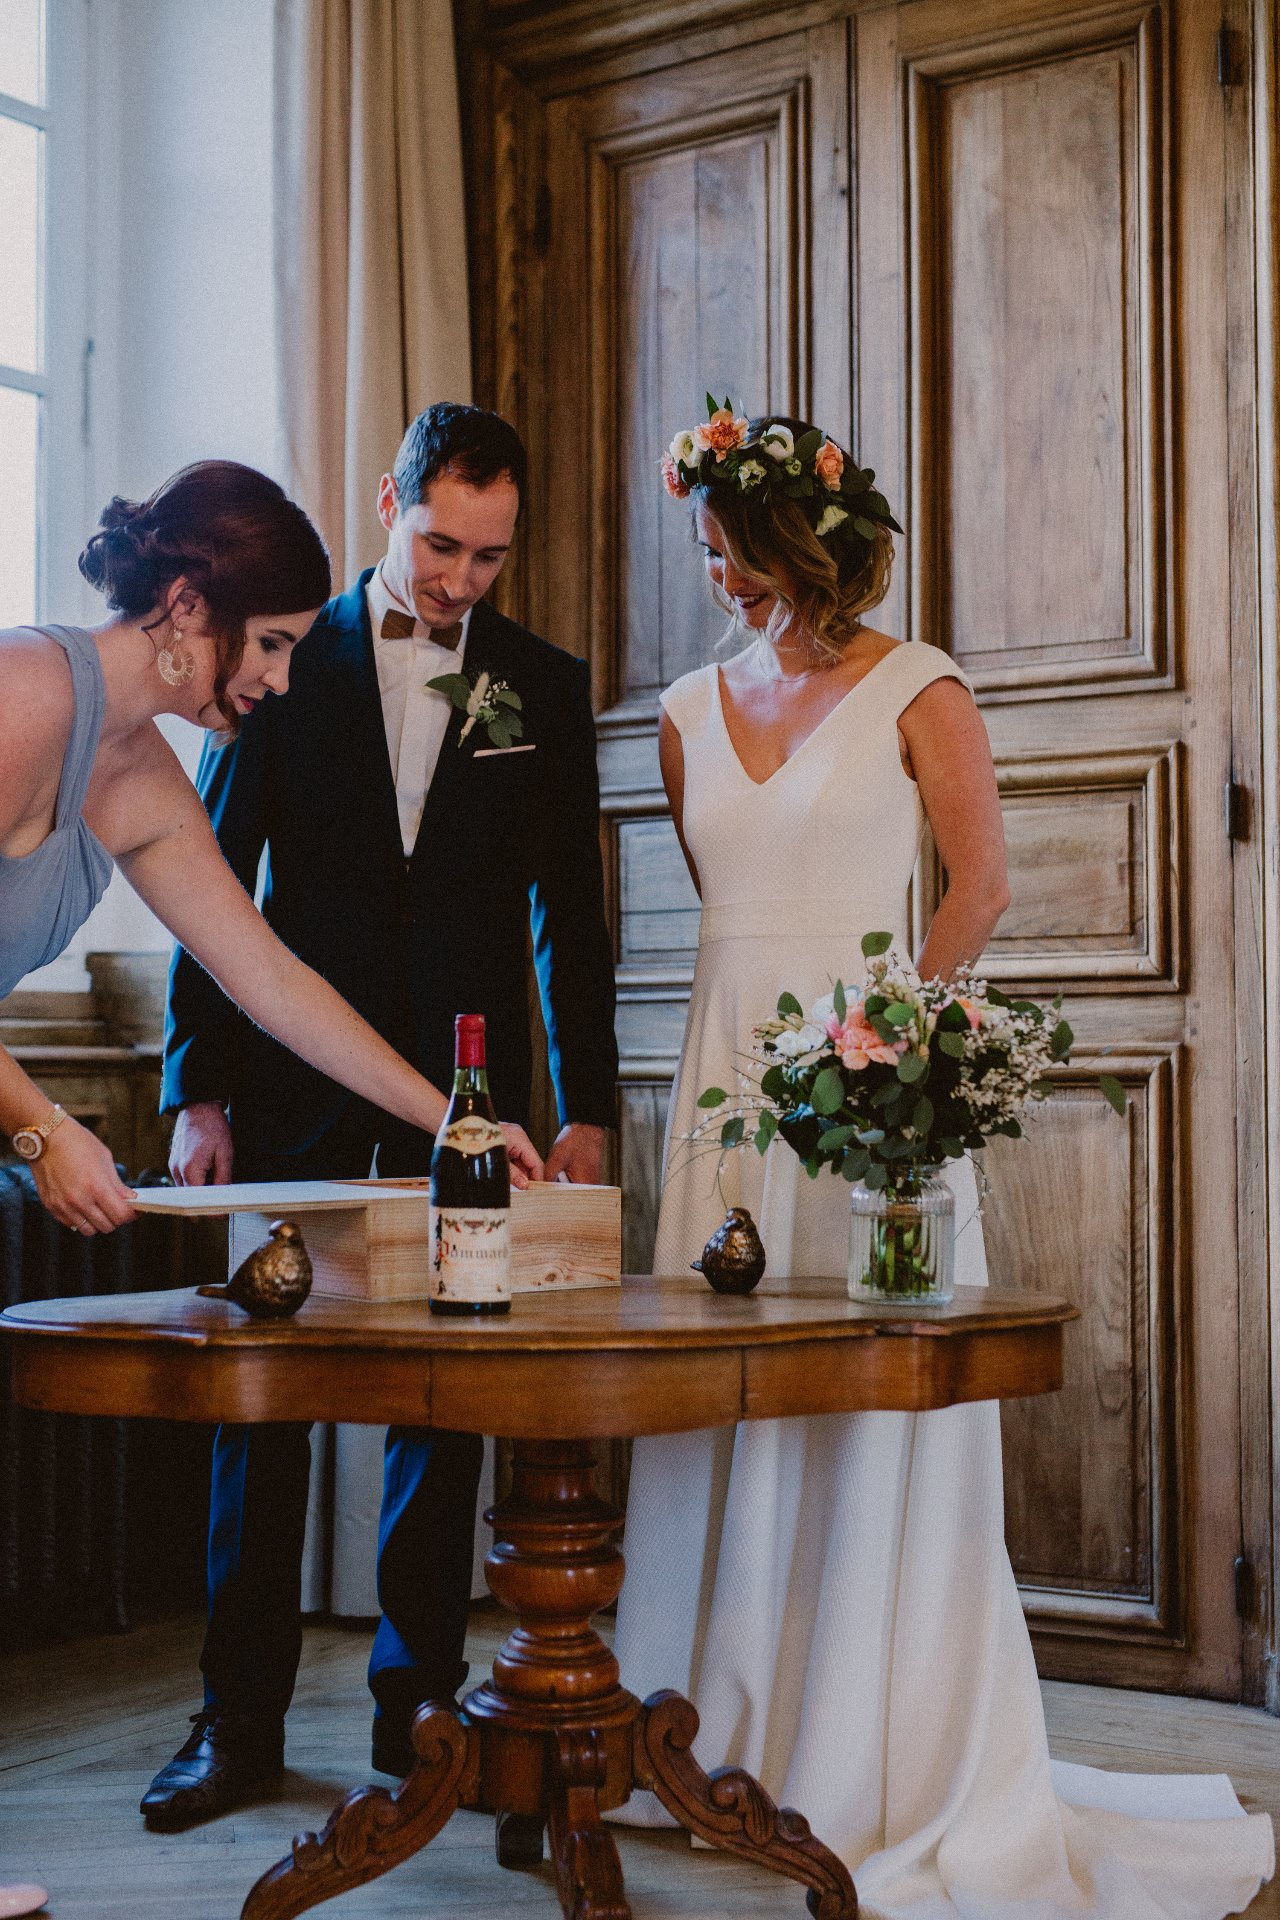 sterenn-officiante-ceremonie-laique-table de rituel-mariage-207